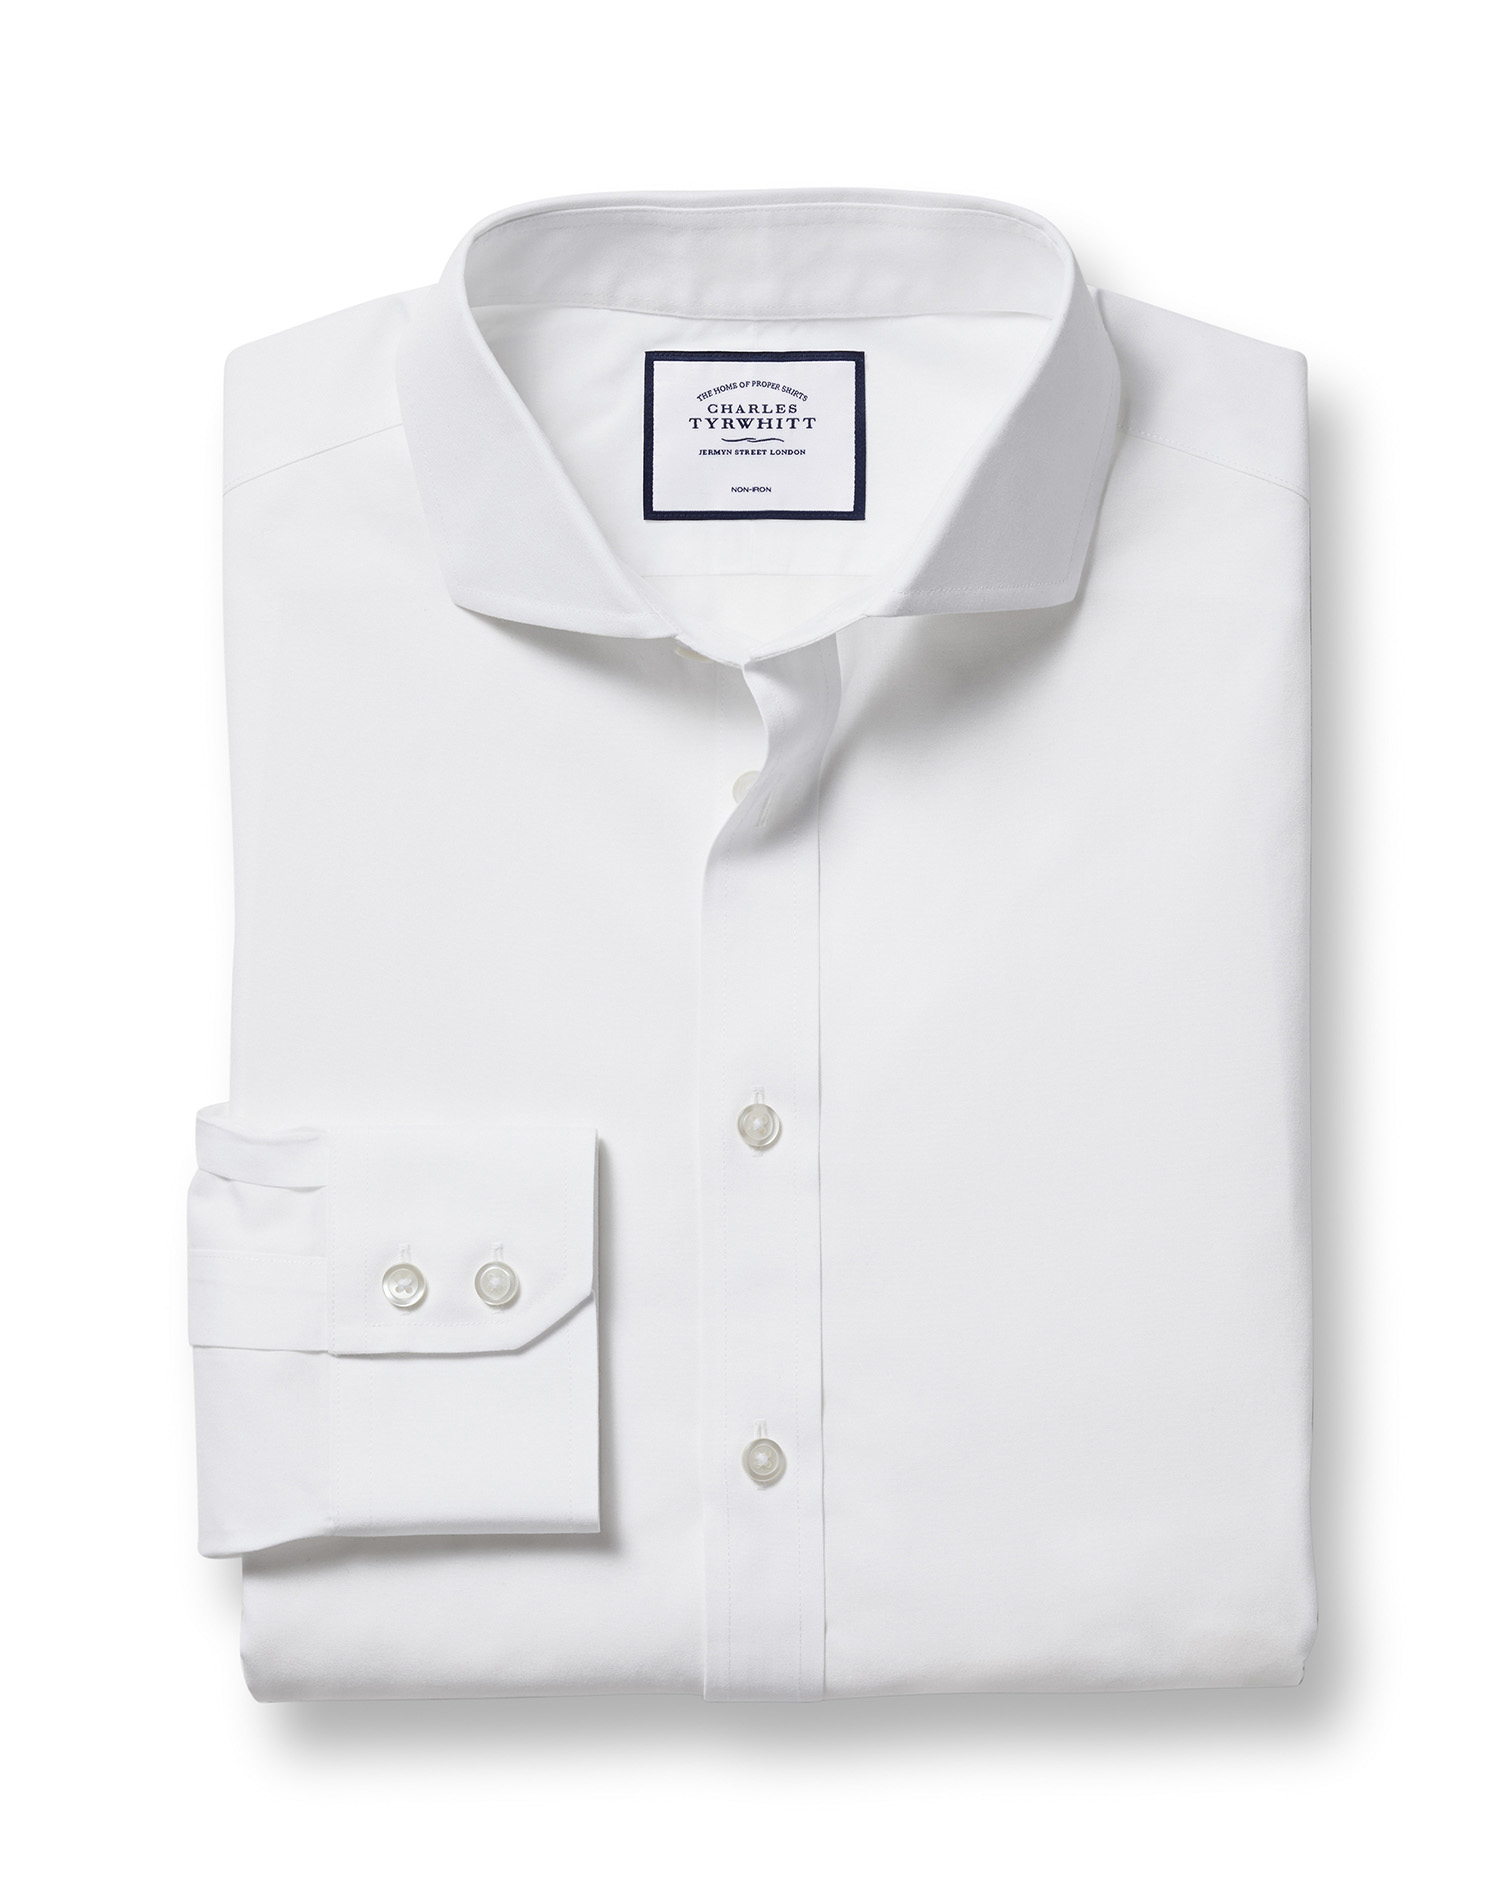 Extra Slim Fit White Non-Iron Poplin Cutaway Collar Cotton Formal Shirt Double Cuff Size 15/35 by Ch